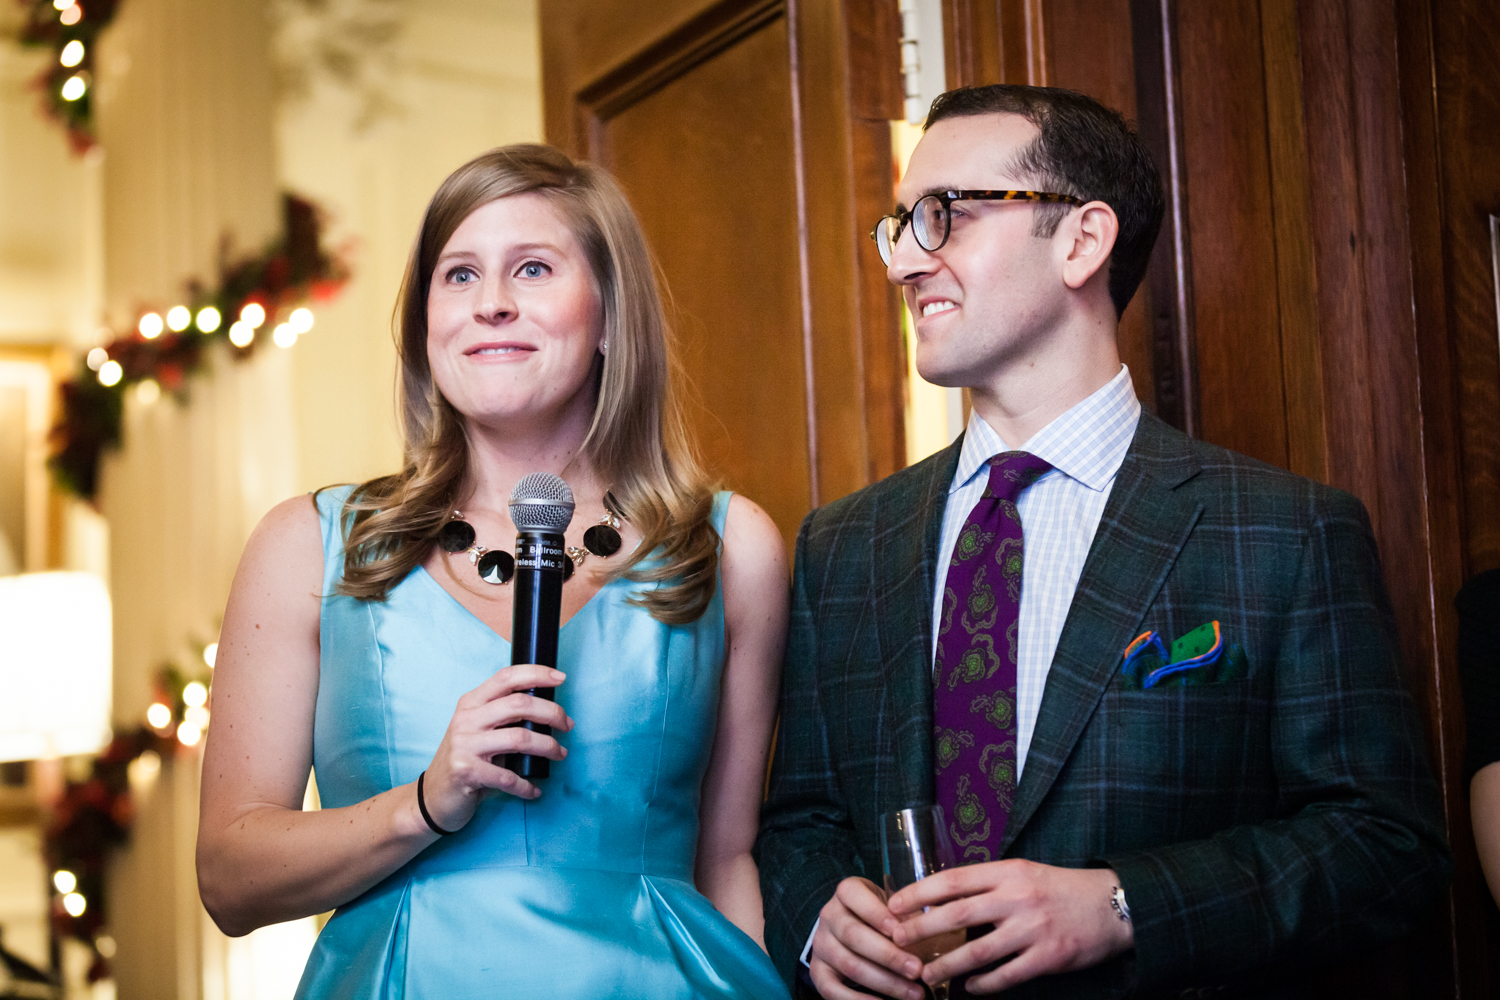 Woman in blue dress holding microphone next to man at a Lotos Club engagement party